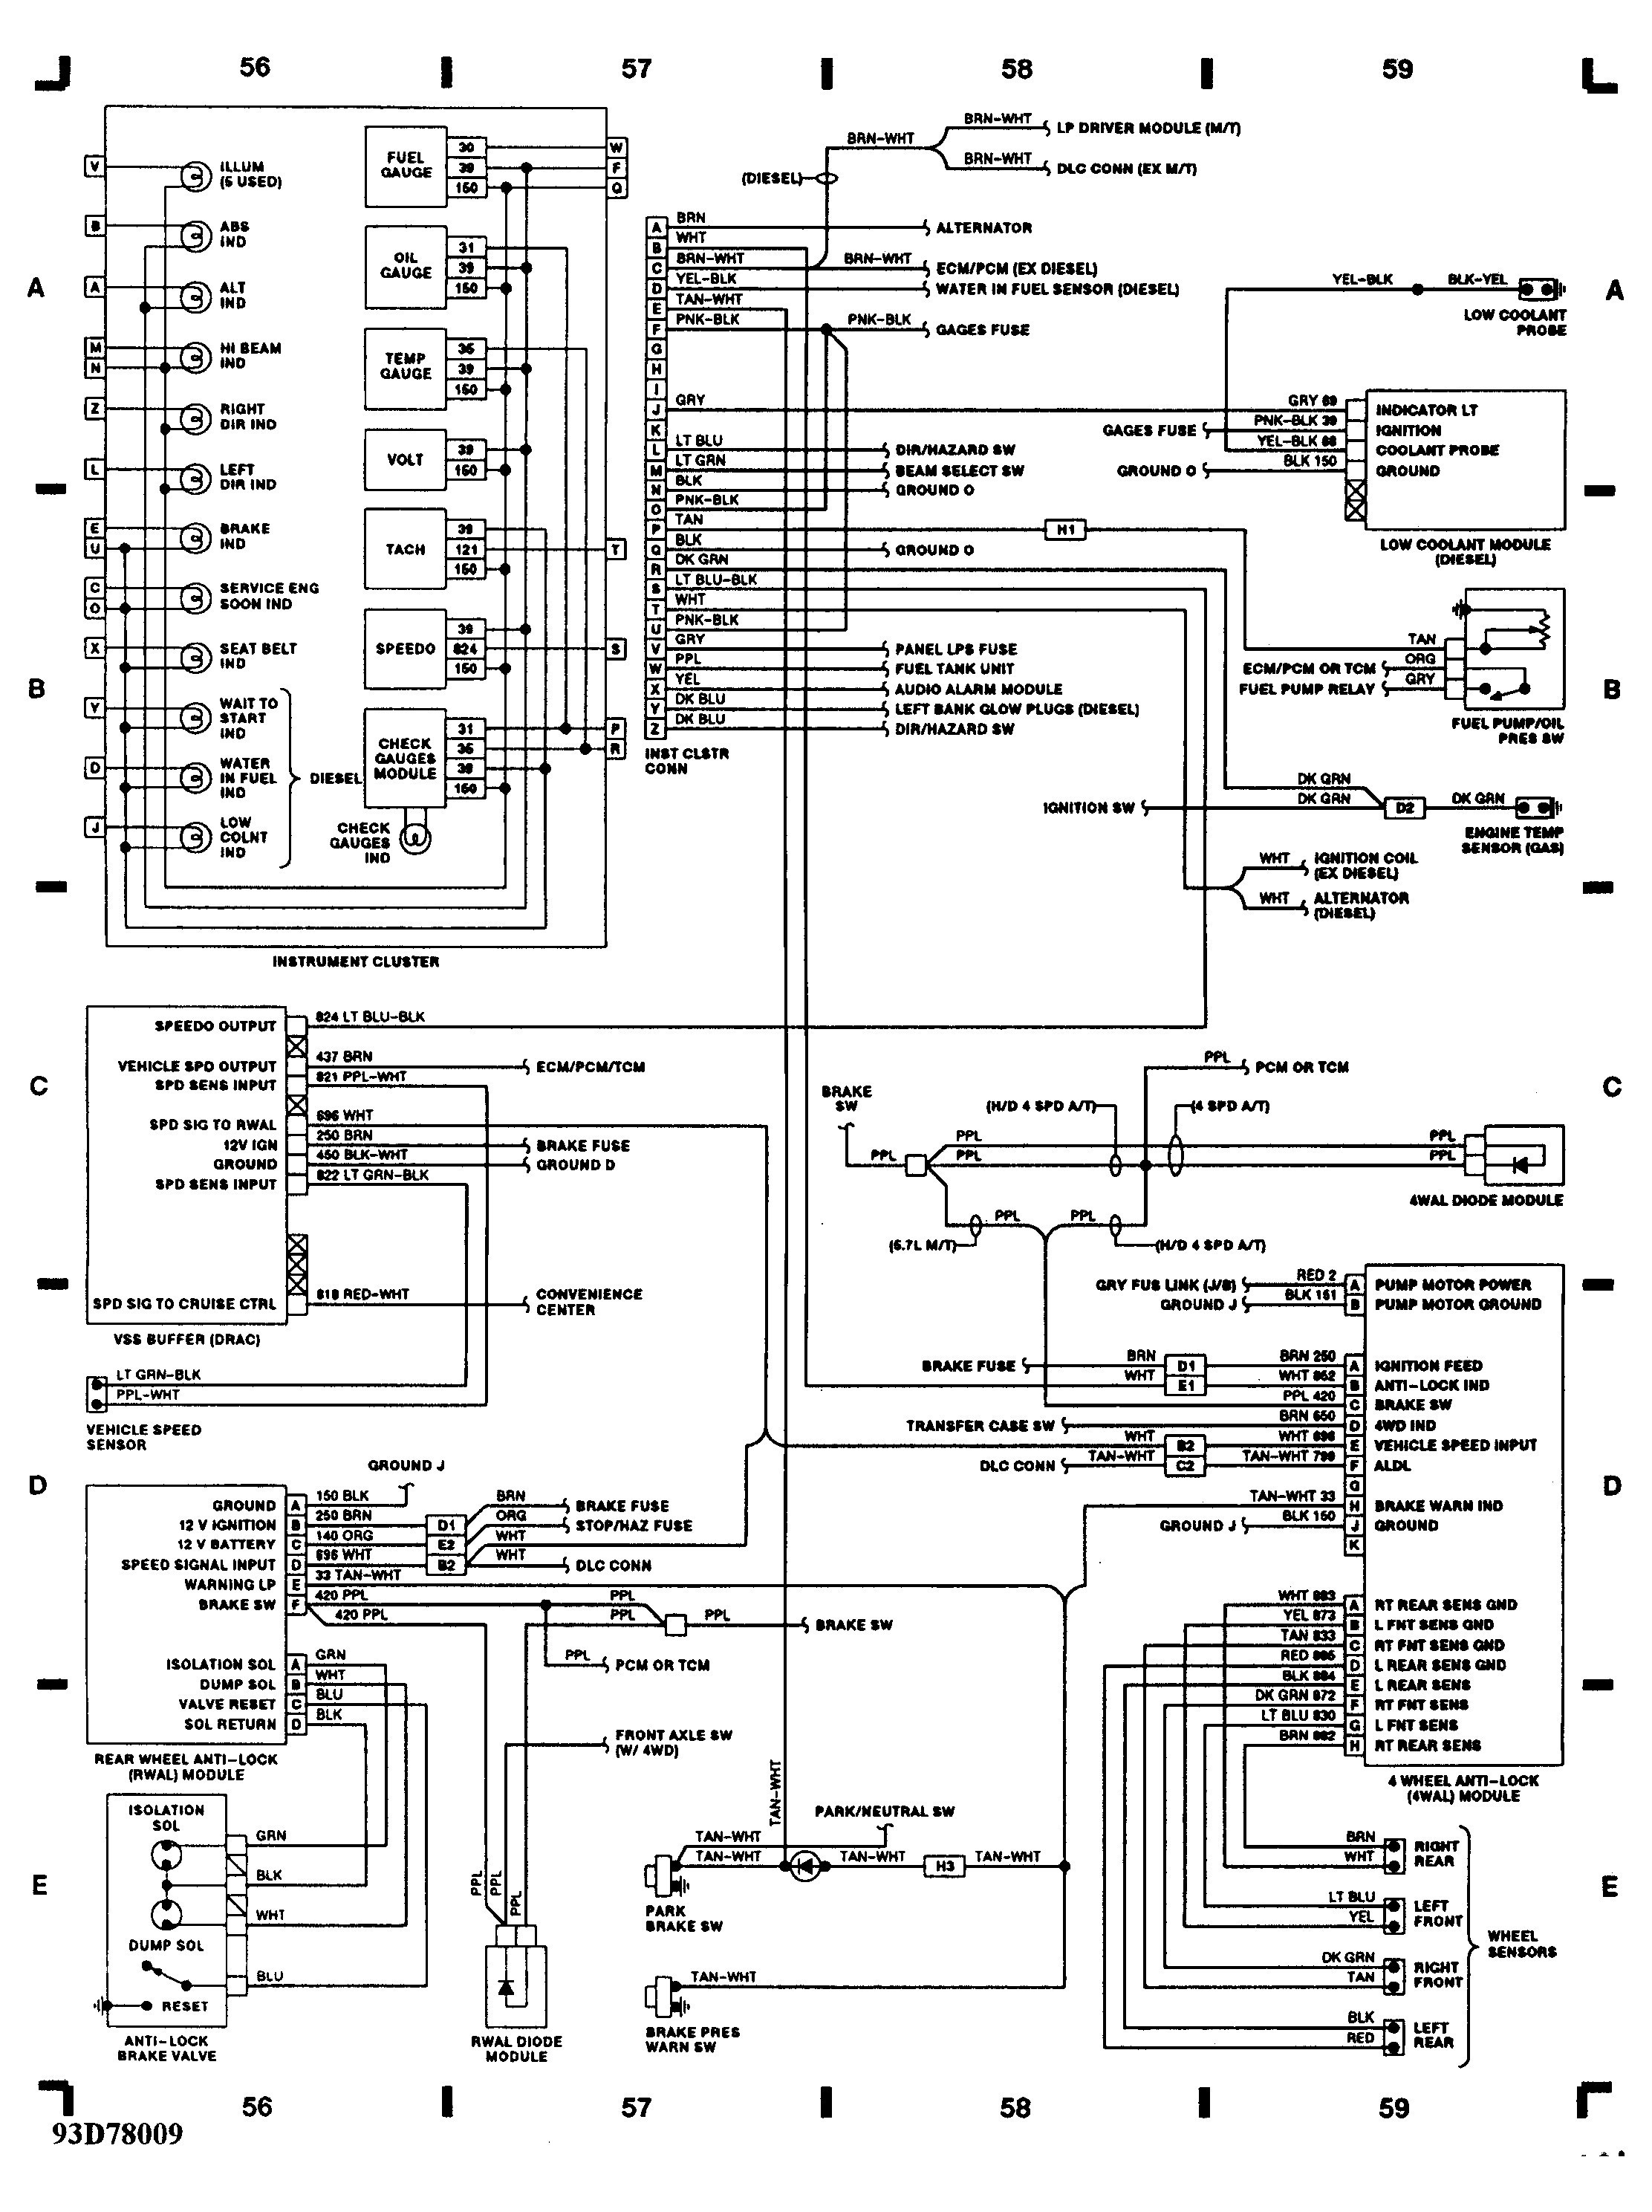 2000 Chevy Venture 3 4 Wiring Diagram Wiring Diagrams Element Element Miglioribanche It